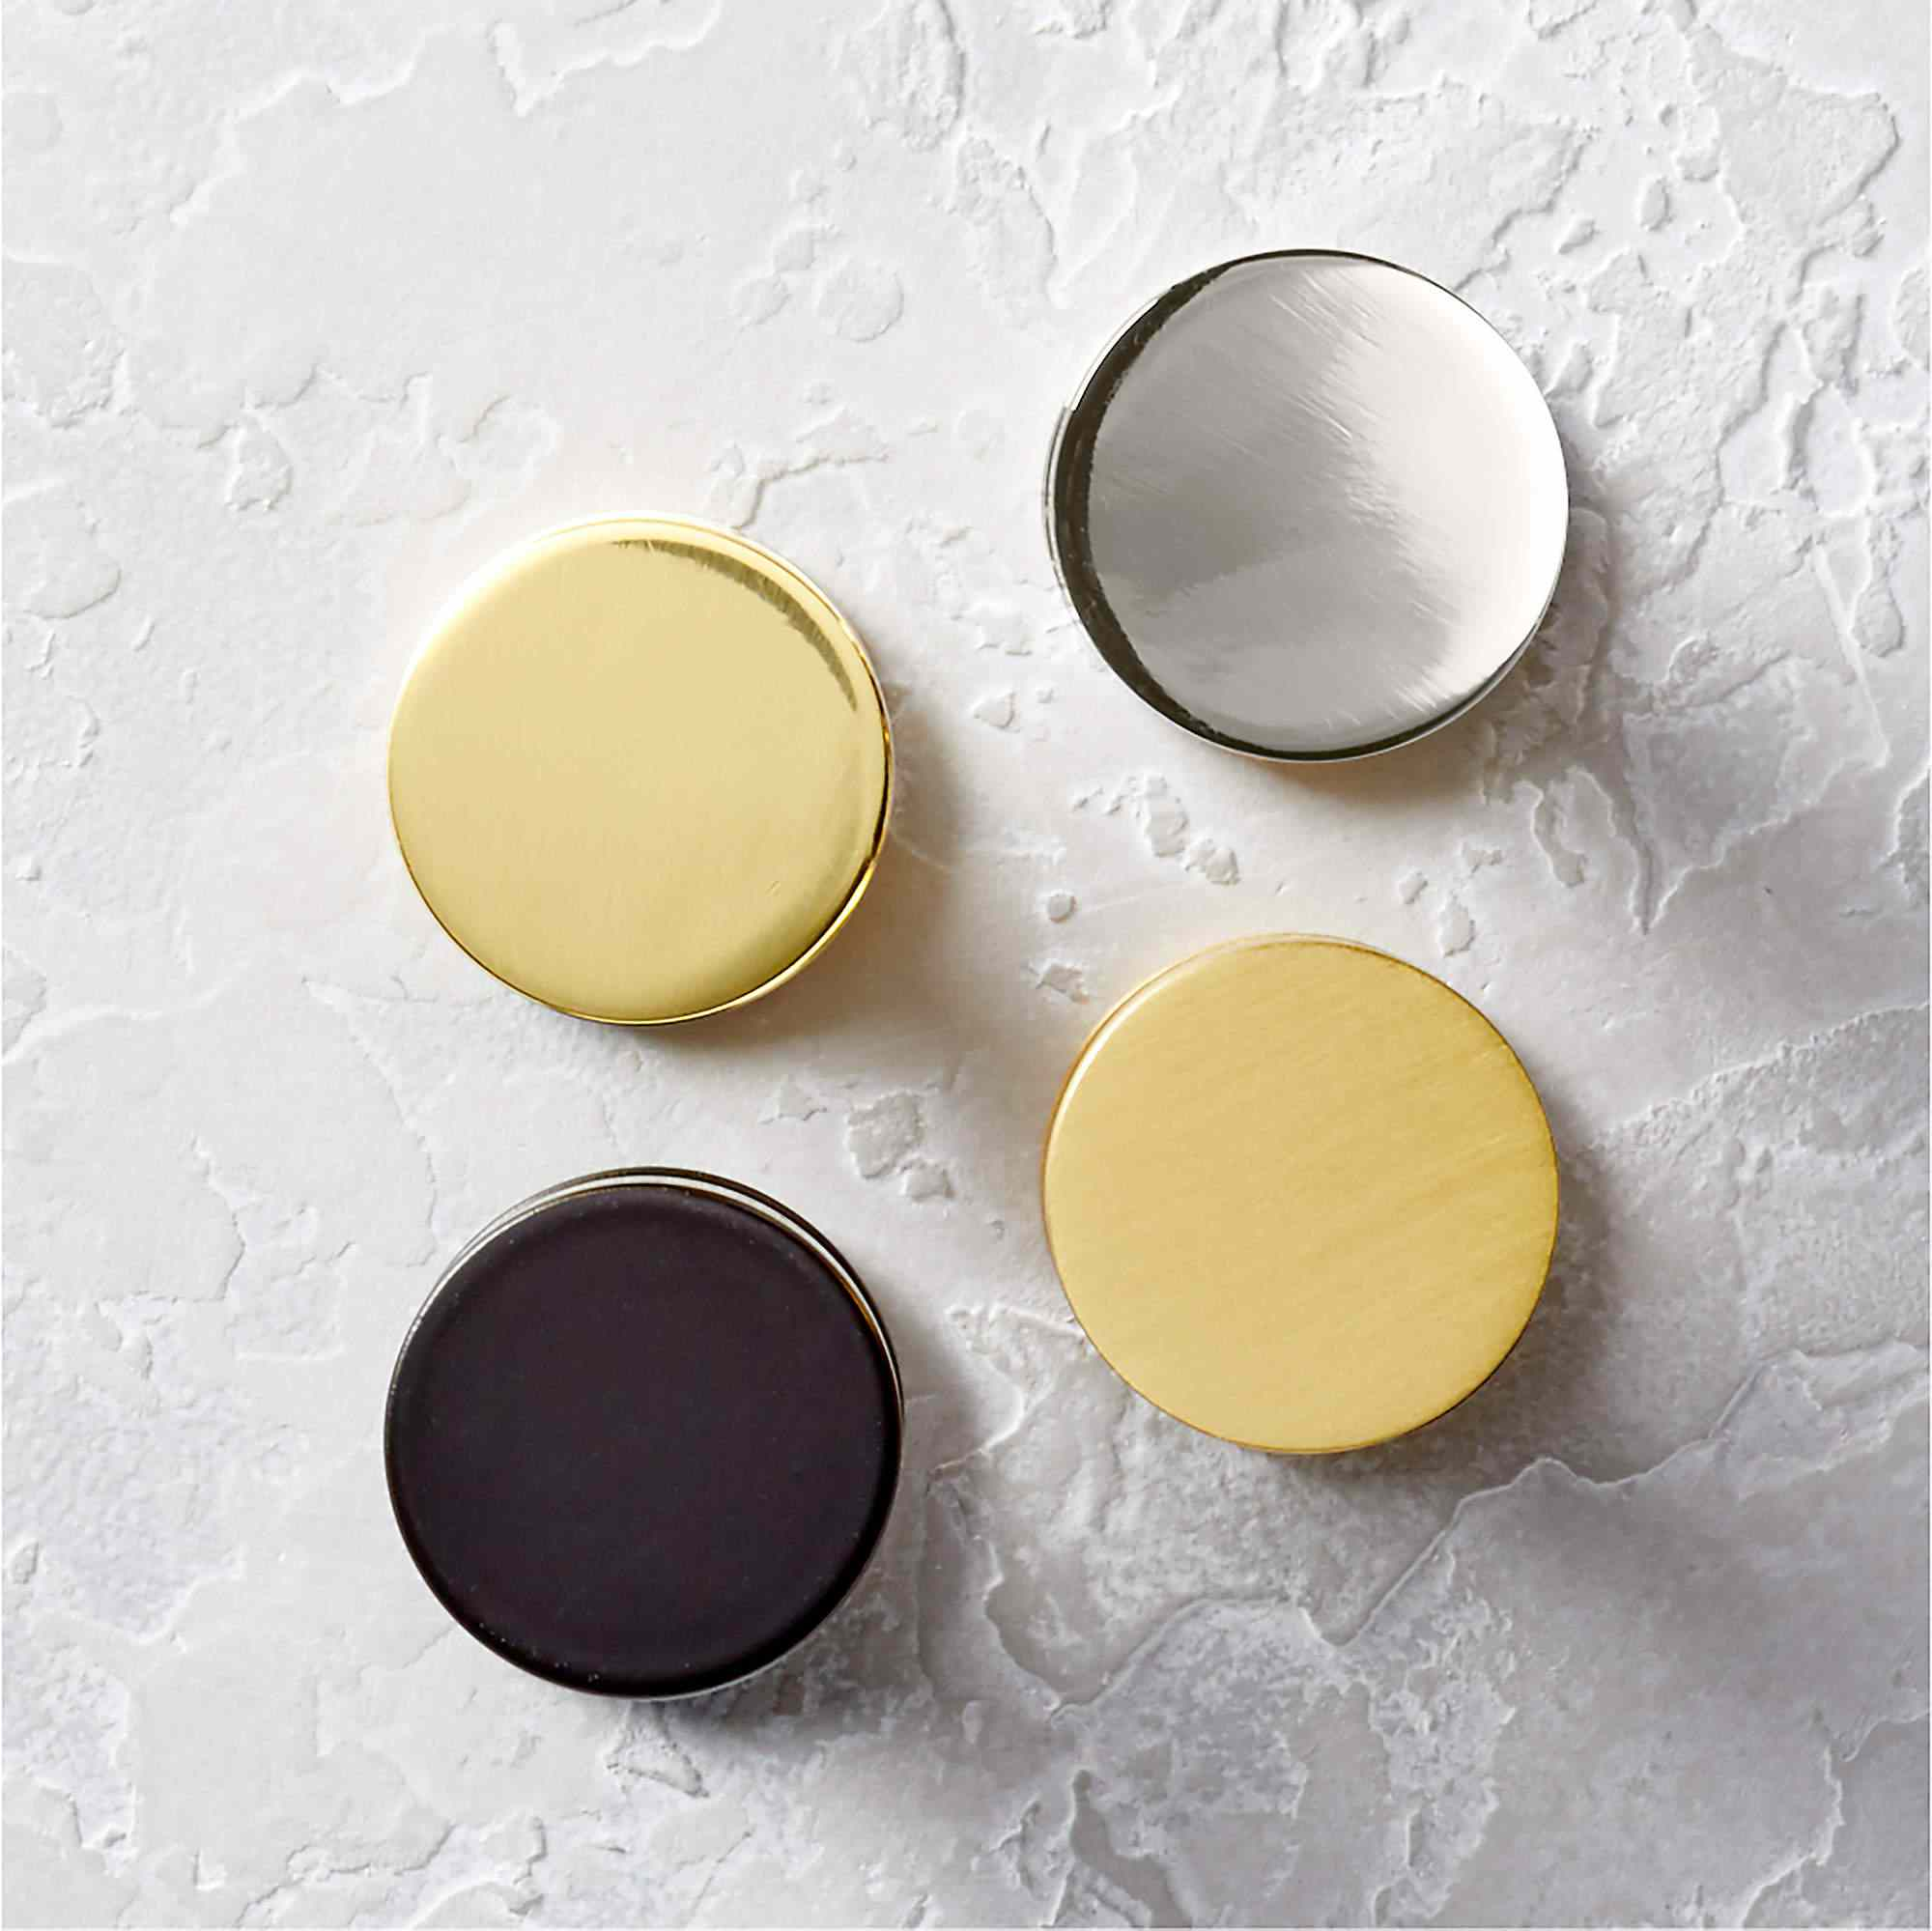 Four round doorknobs you can buy at CB2